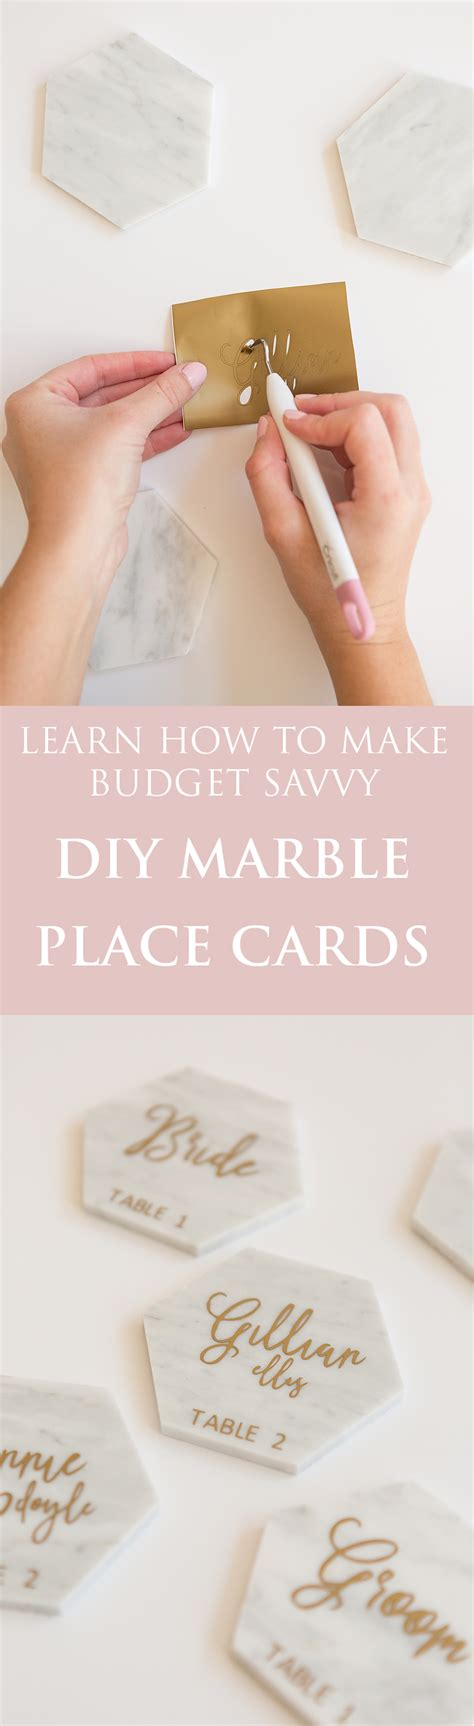 how to make my own wedding place cards diy calligraphy marble place cards with cricut